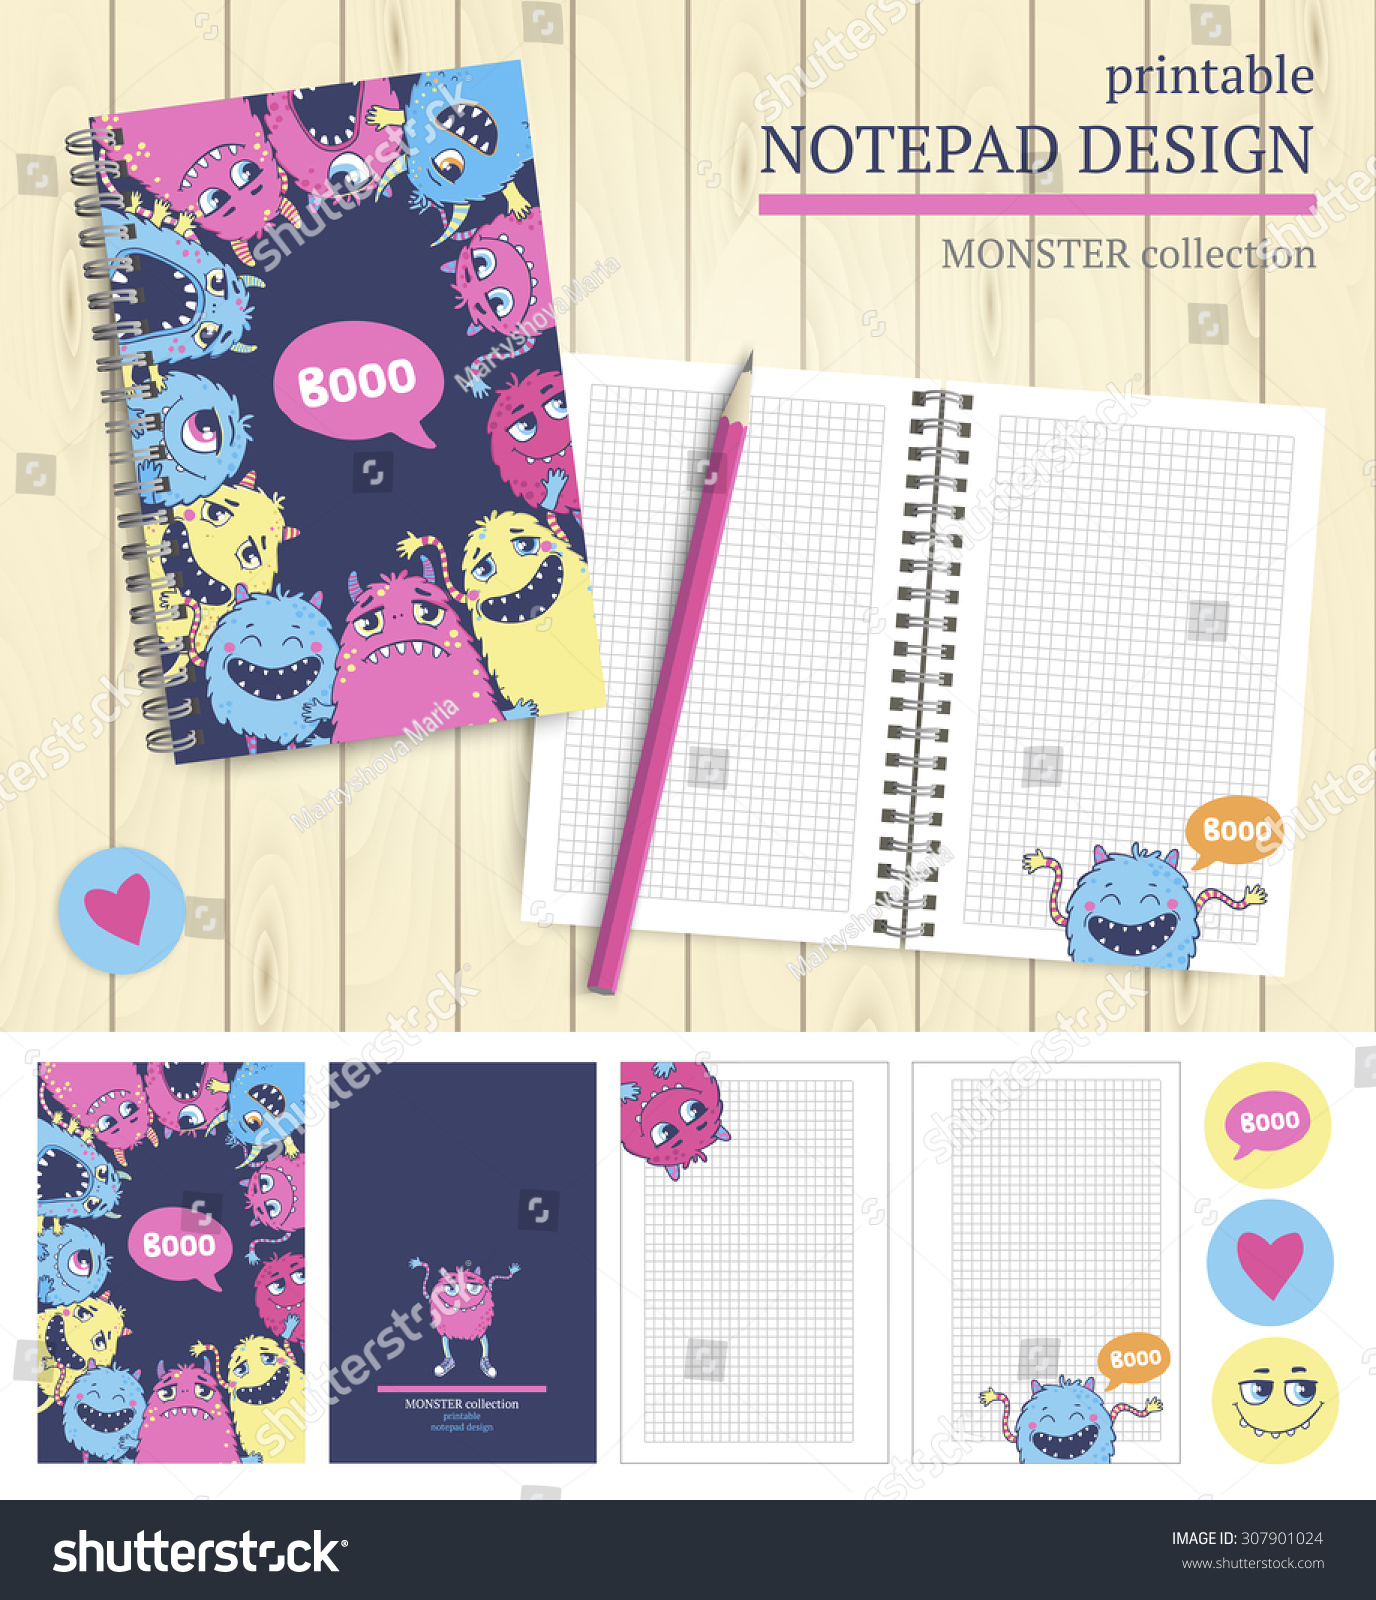 Vector Printable Notepad Design Cover And Papers With Cartoon Monsters.